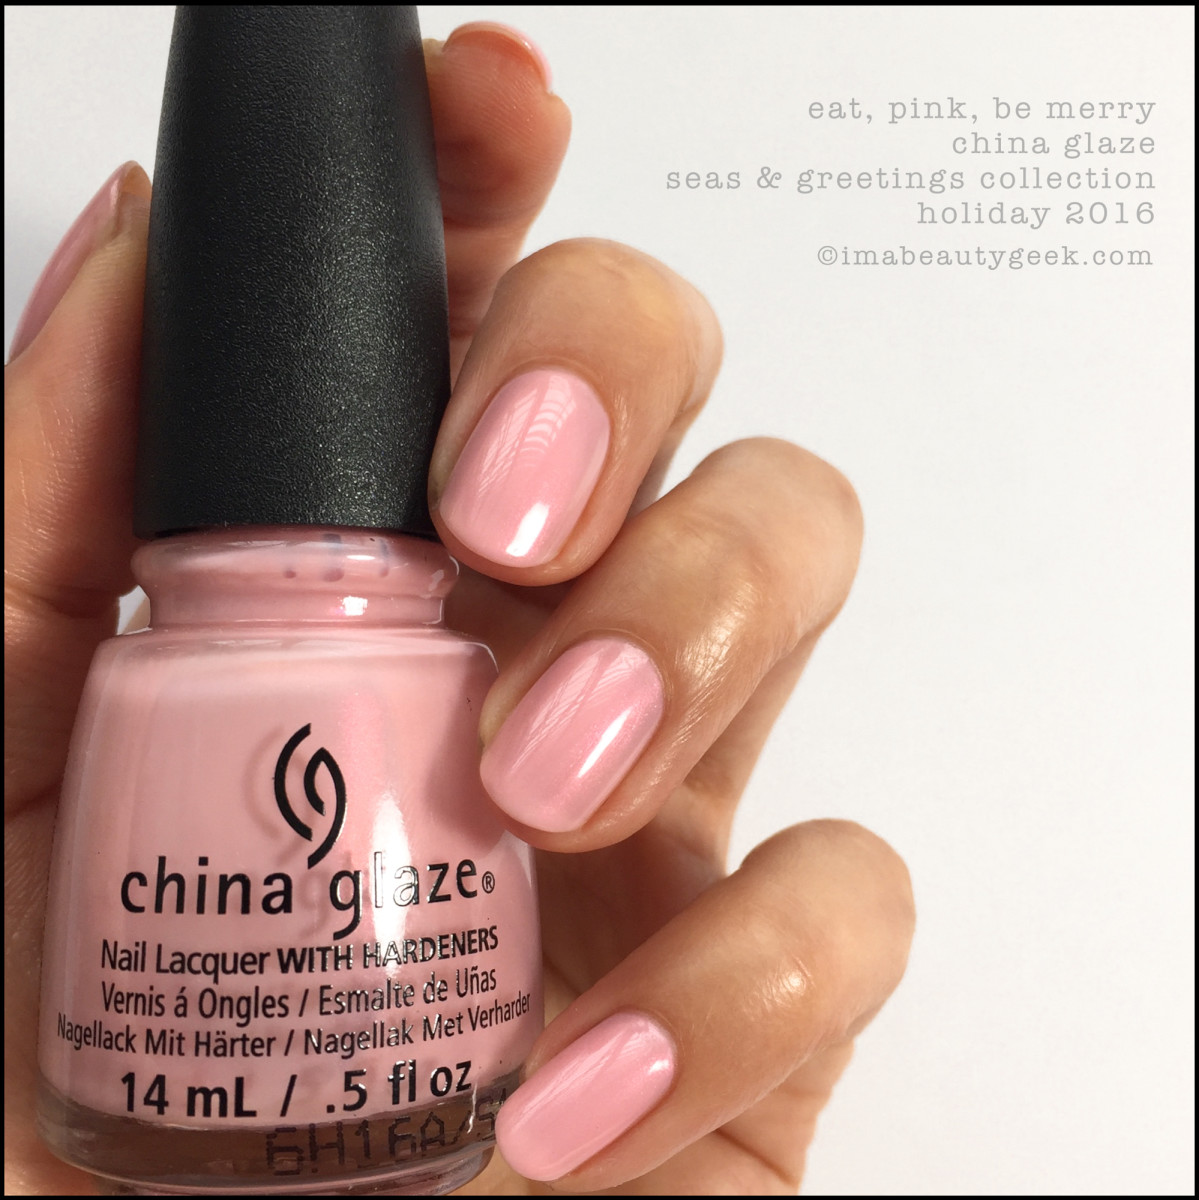 China Glaze Eat Pink Be Merry Artificial_China Glaze Seas Greetings Holiday 2016 Swatches Review